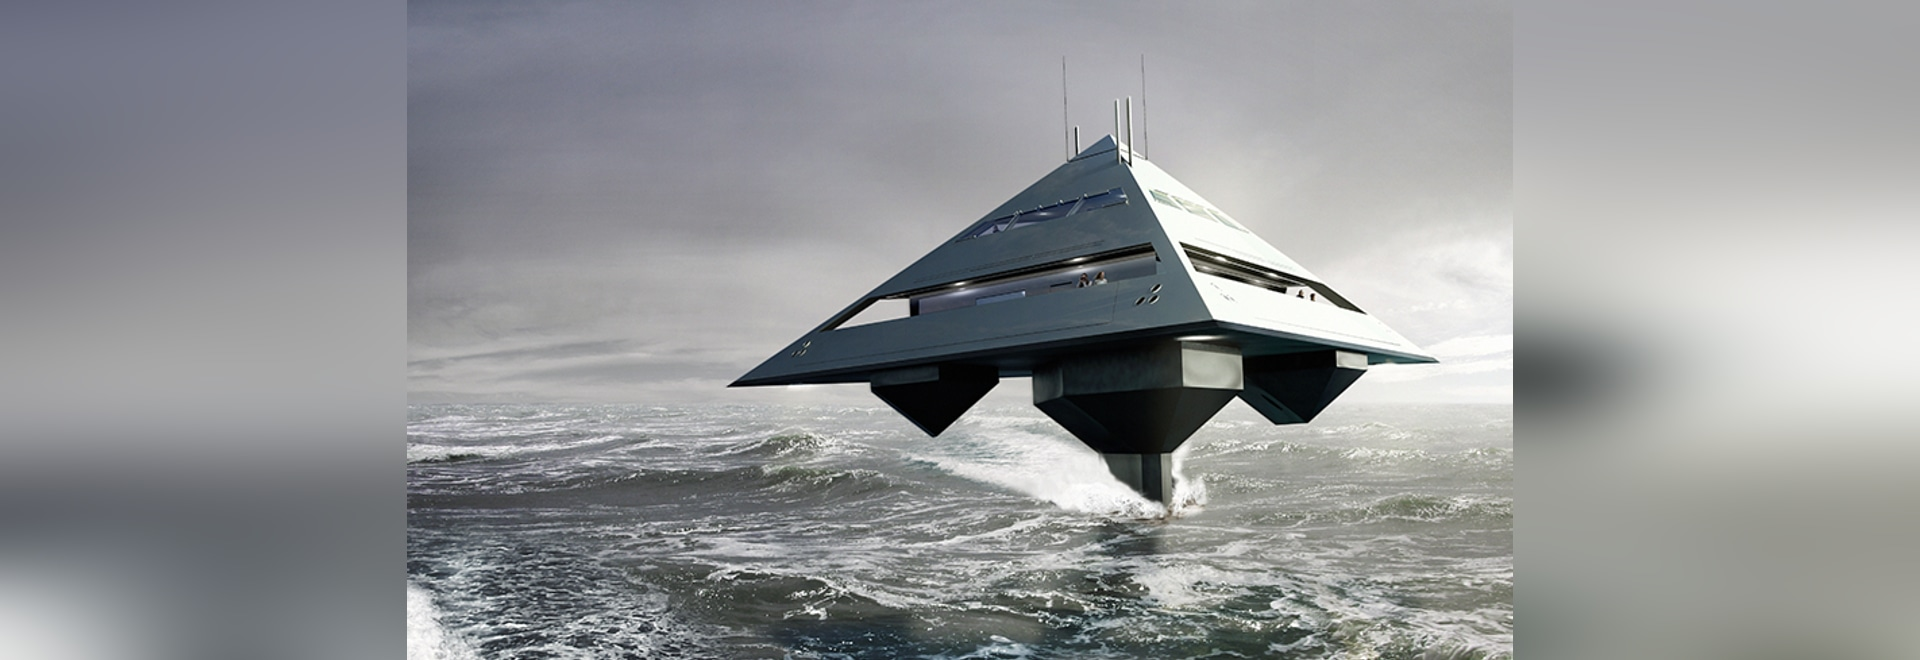 tetrahedron super yacht appears to fly above the surface of the sea